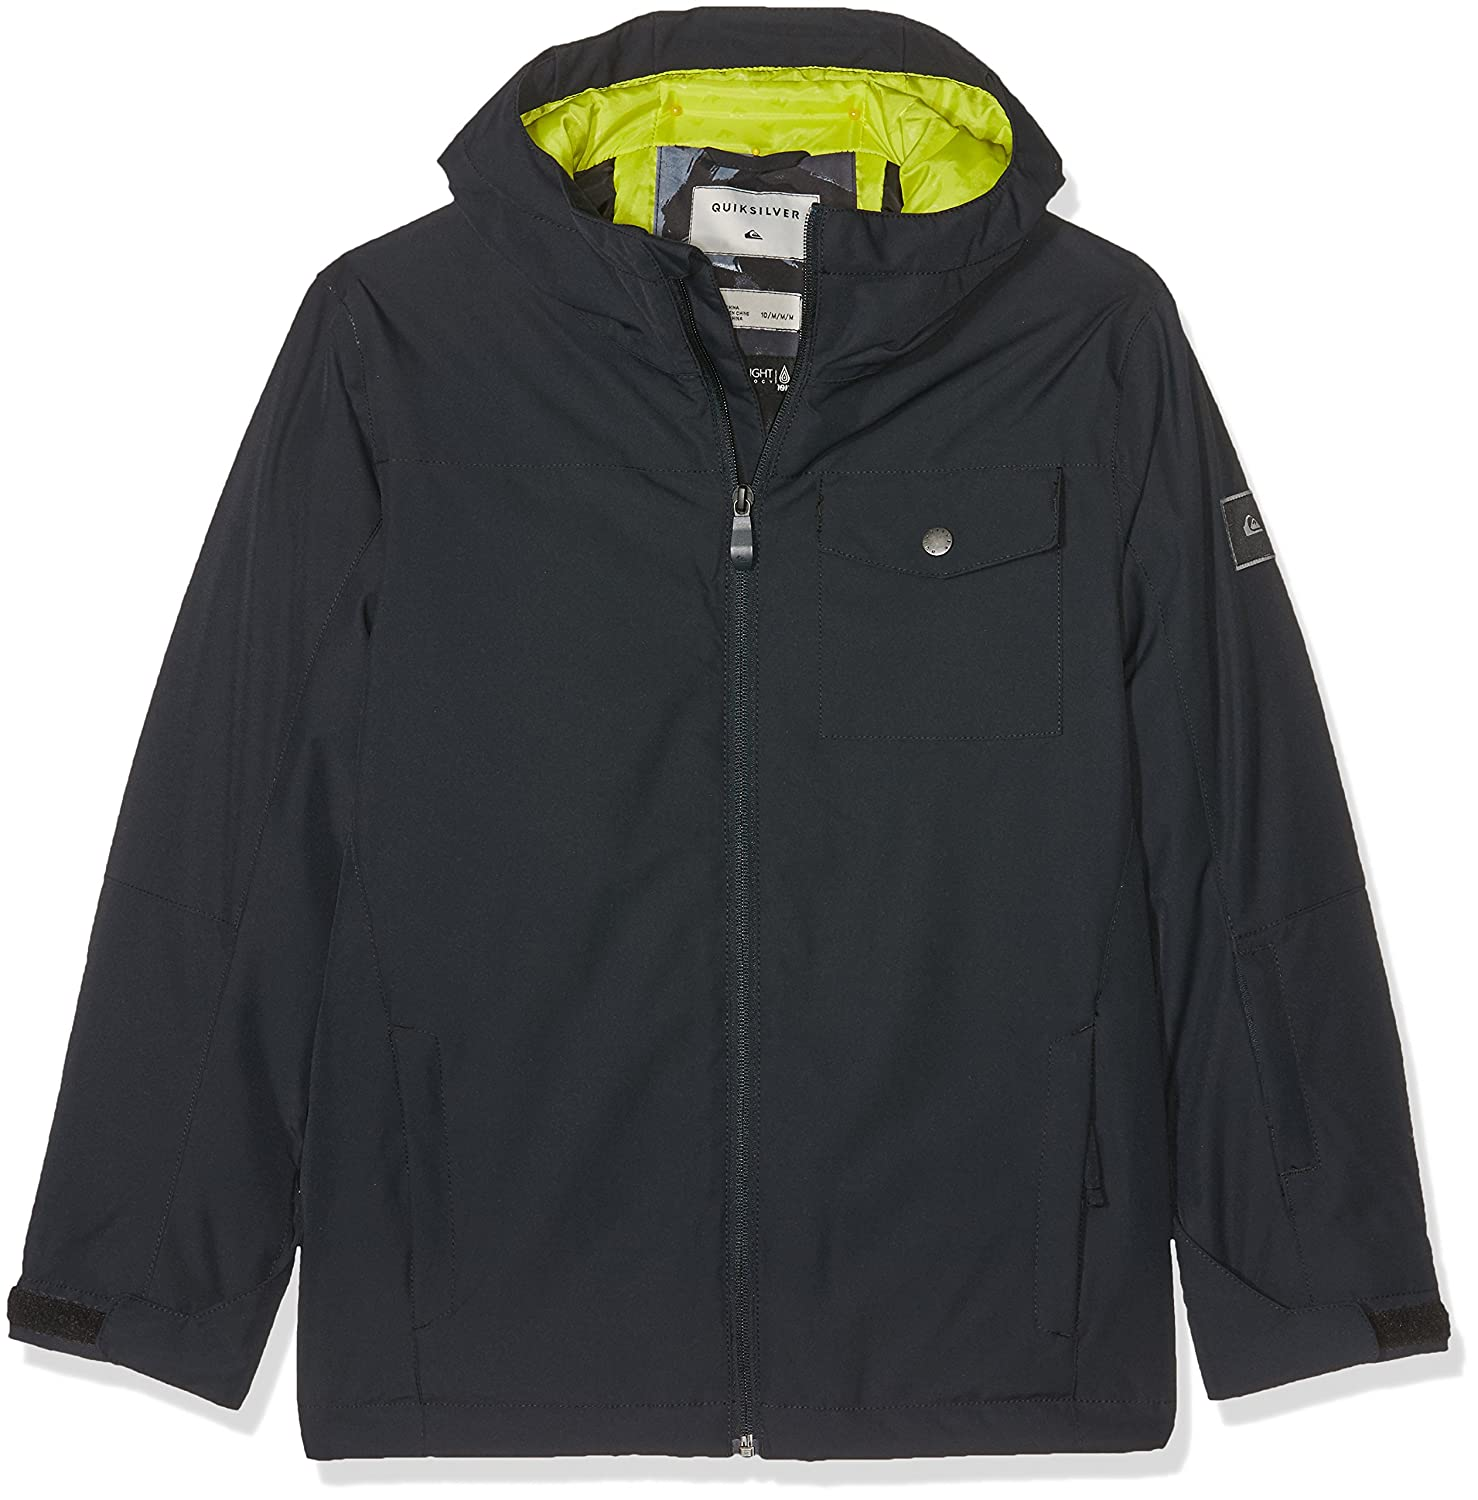 Amazon.com : Quiksilver Snow Jackets Mission Solid Youth Snow Jacket - Black : Sports & Outdoors